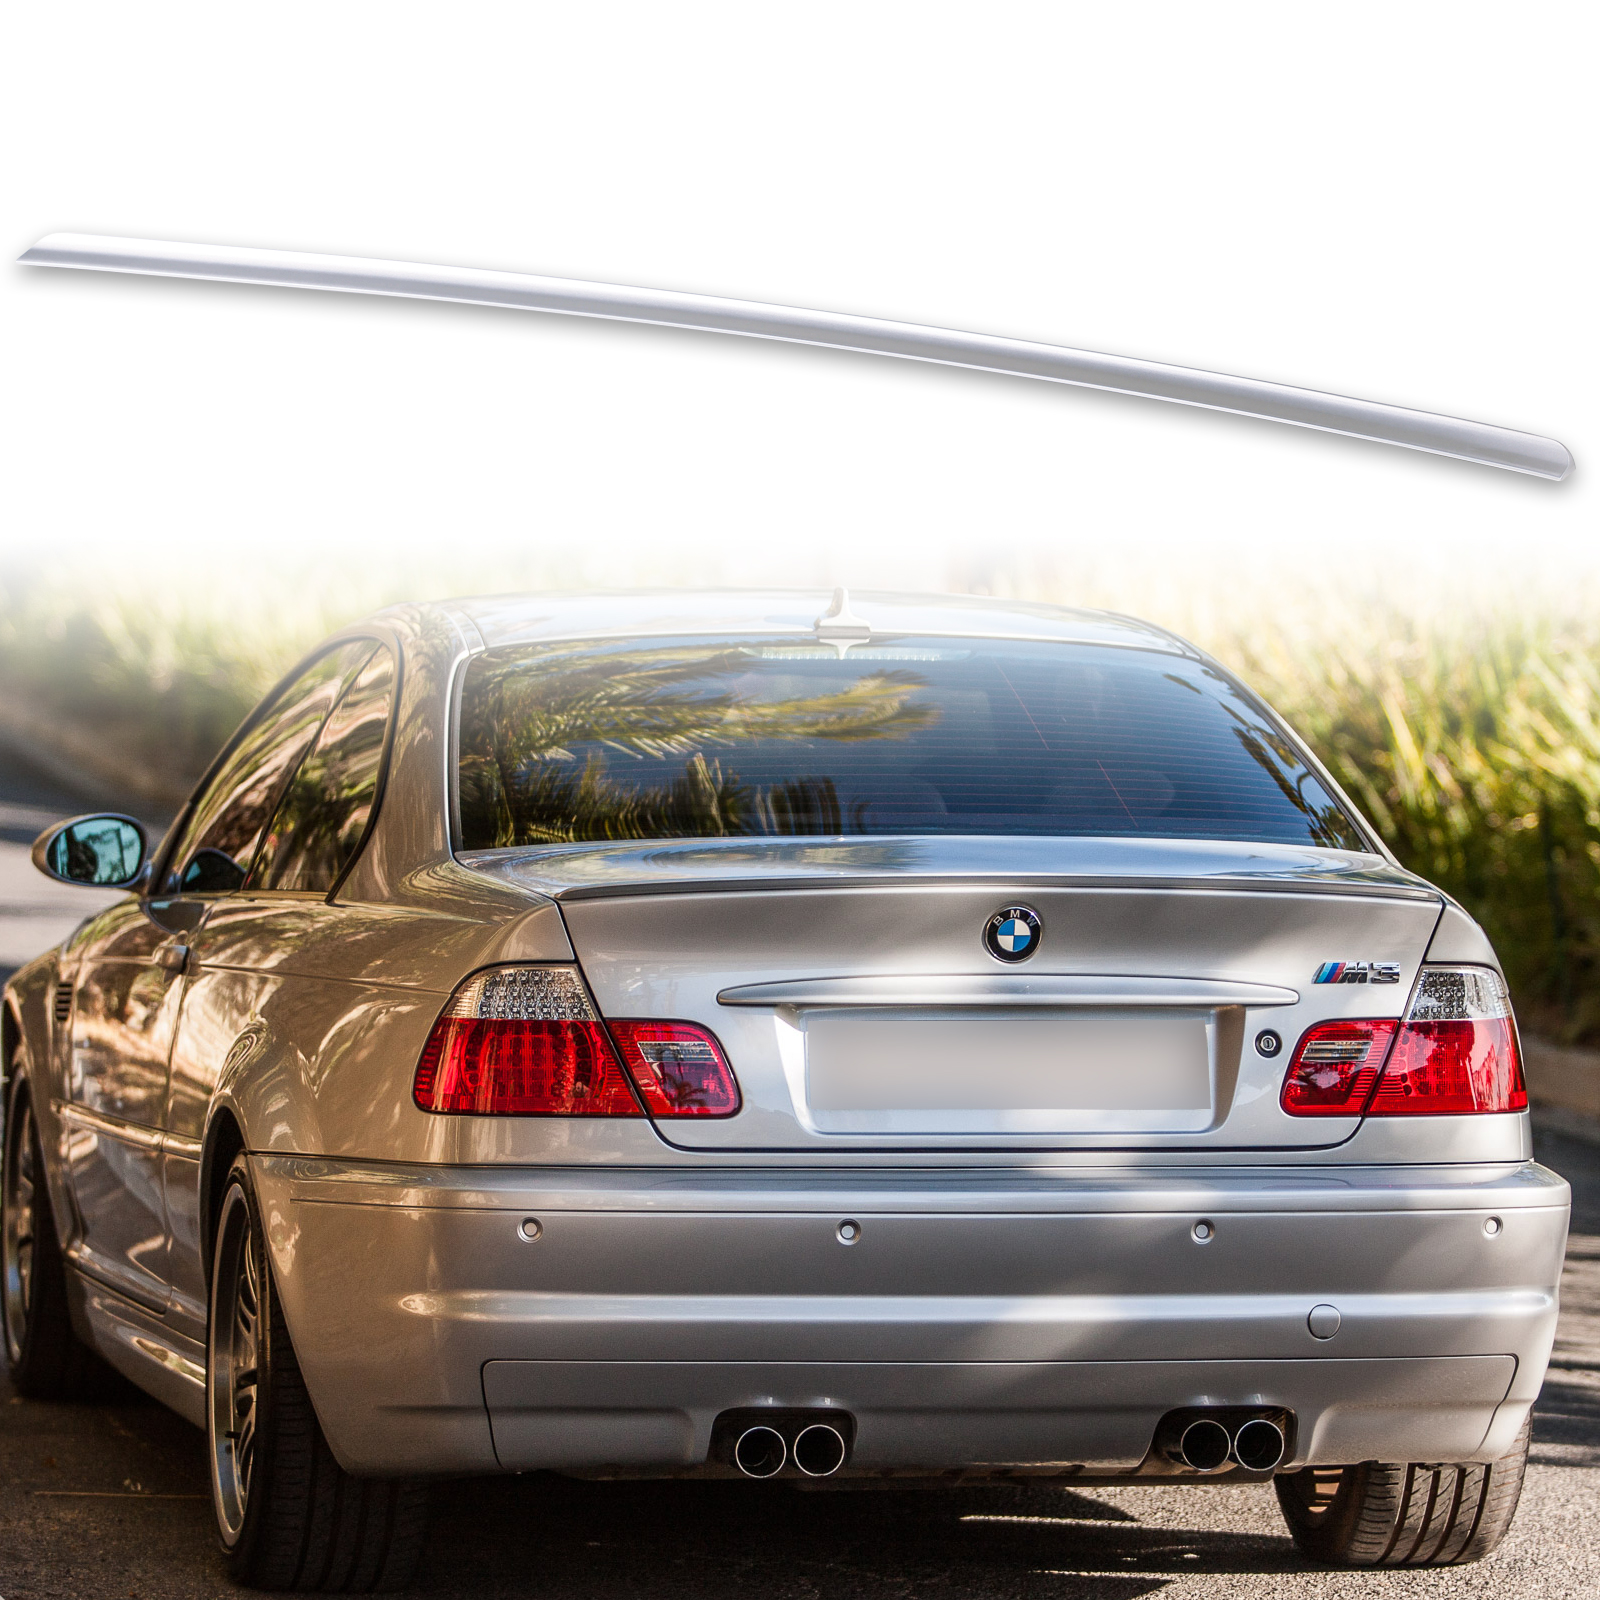 Details About Painted Fyralip Trunk Lip Spoiler For Bmw E46 Coupe M3 Titan Silver Metallic 354